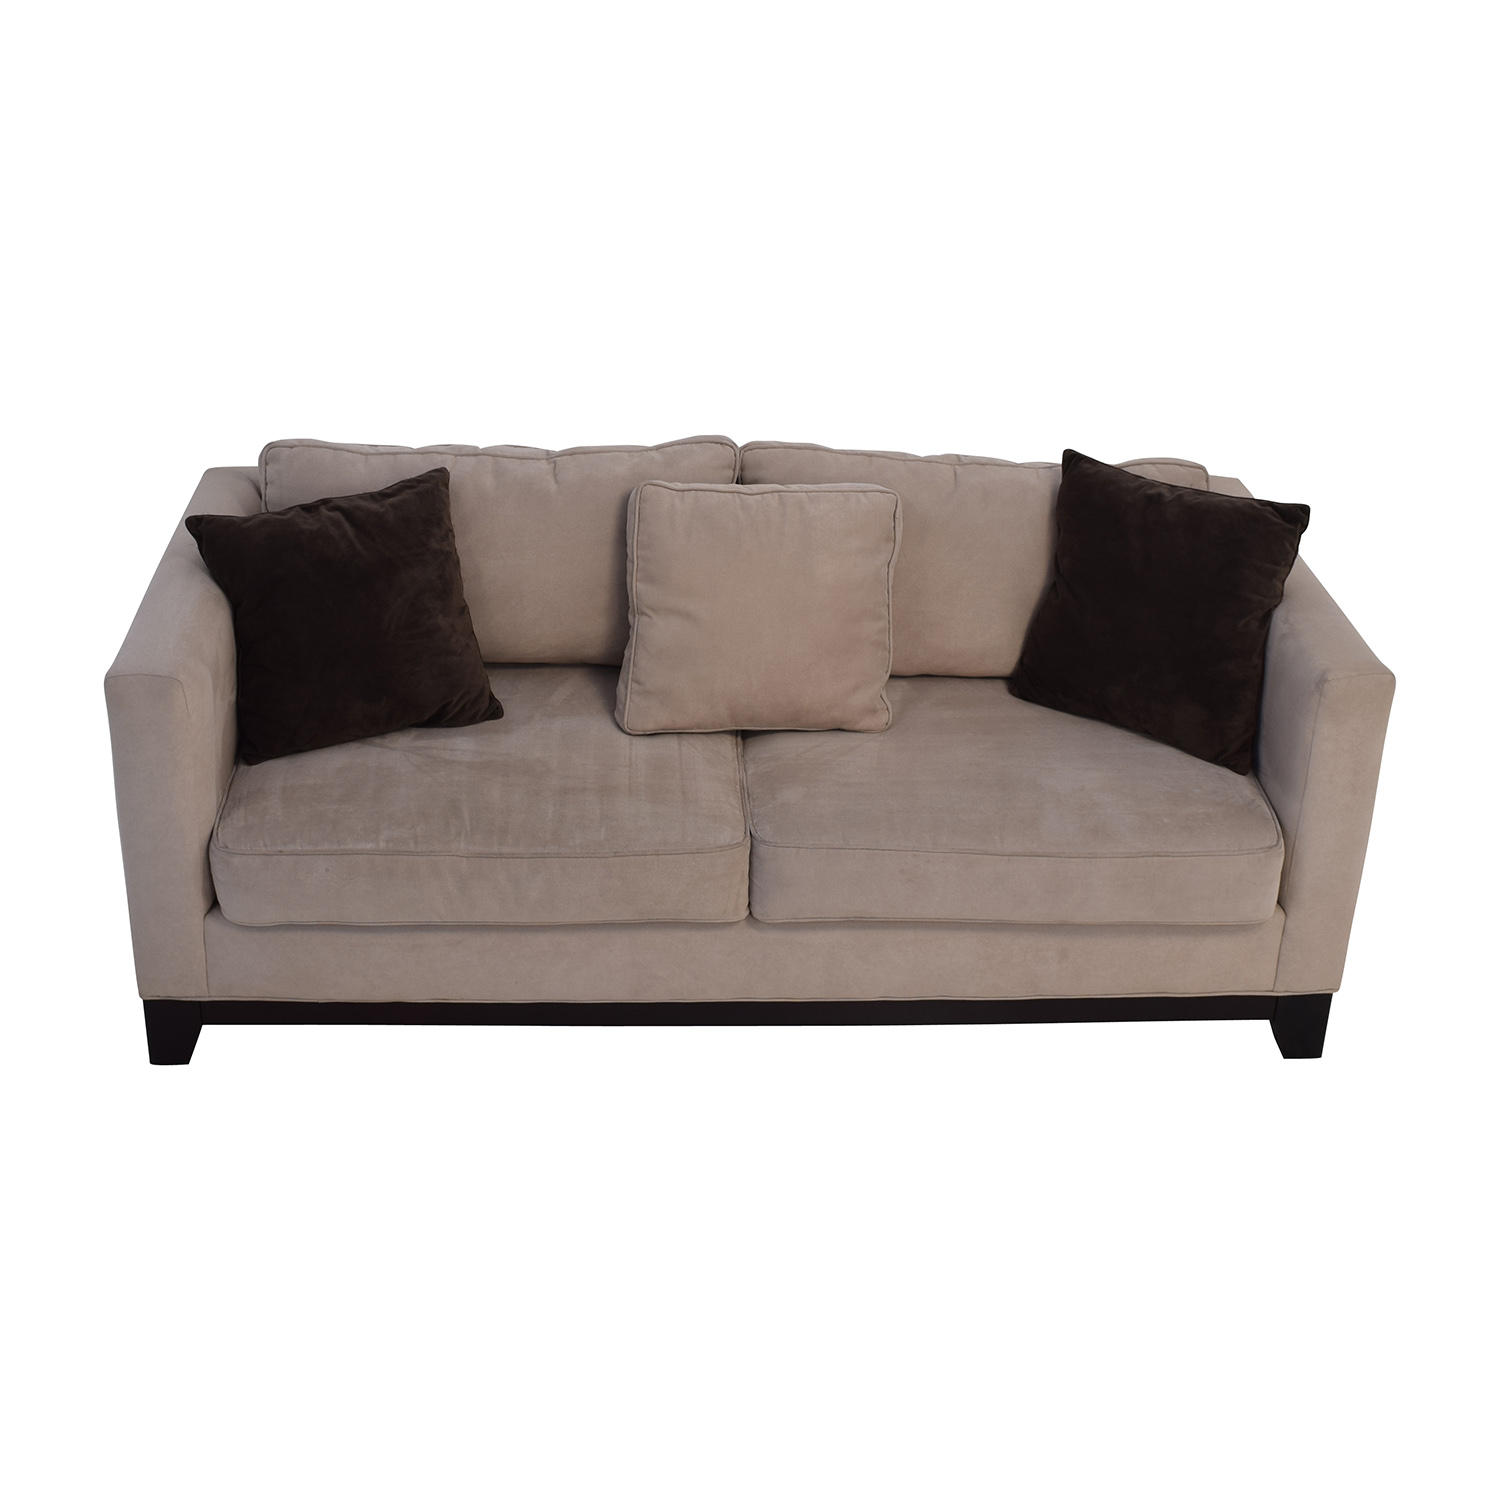 Bauhaus Beige Microsuede Couch with Toss Pillows / Sofas